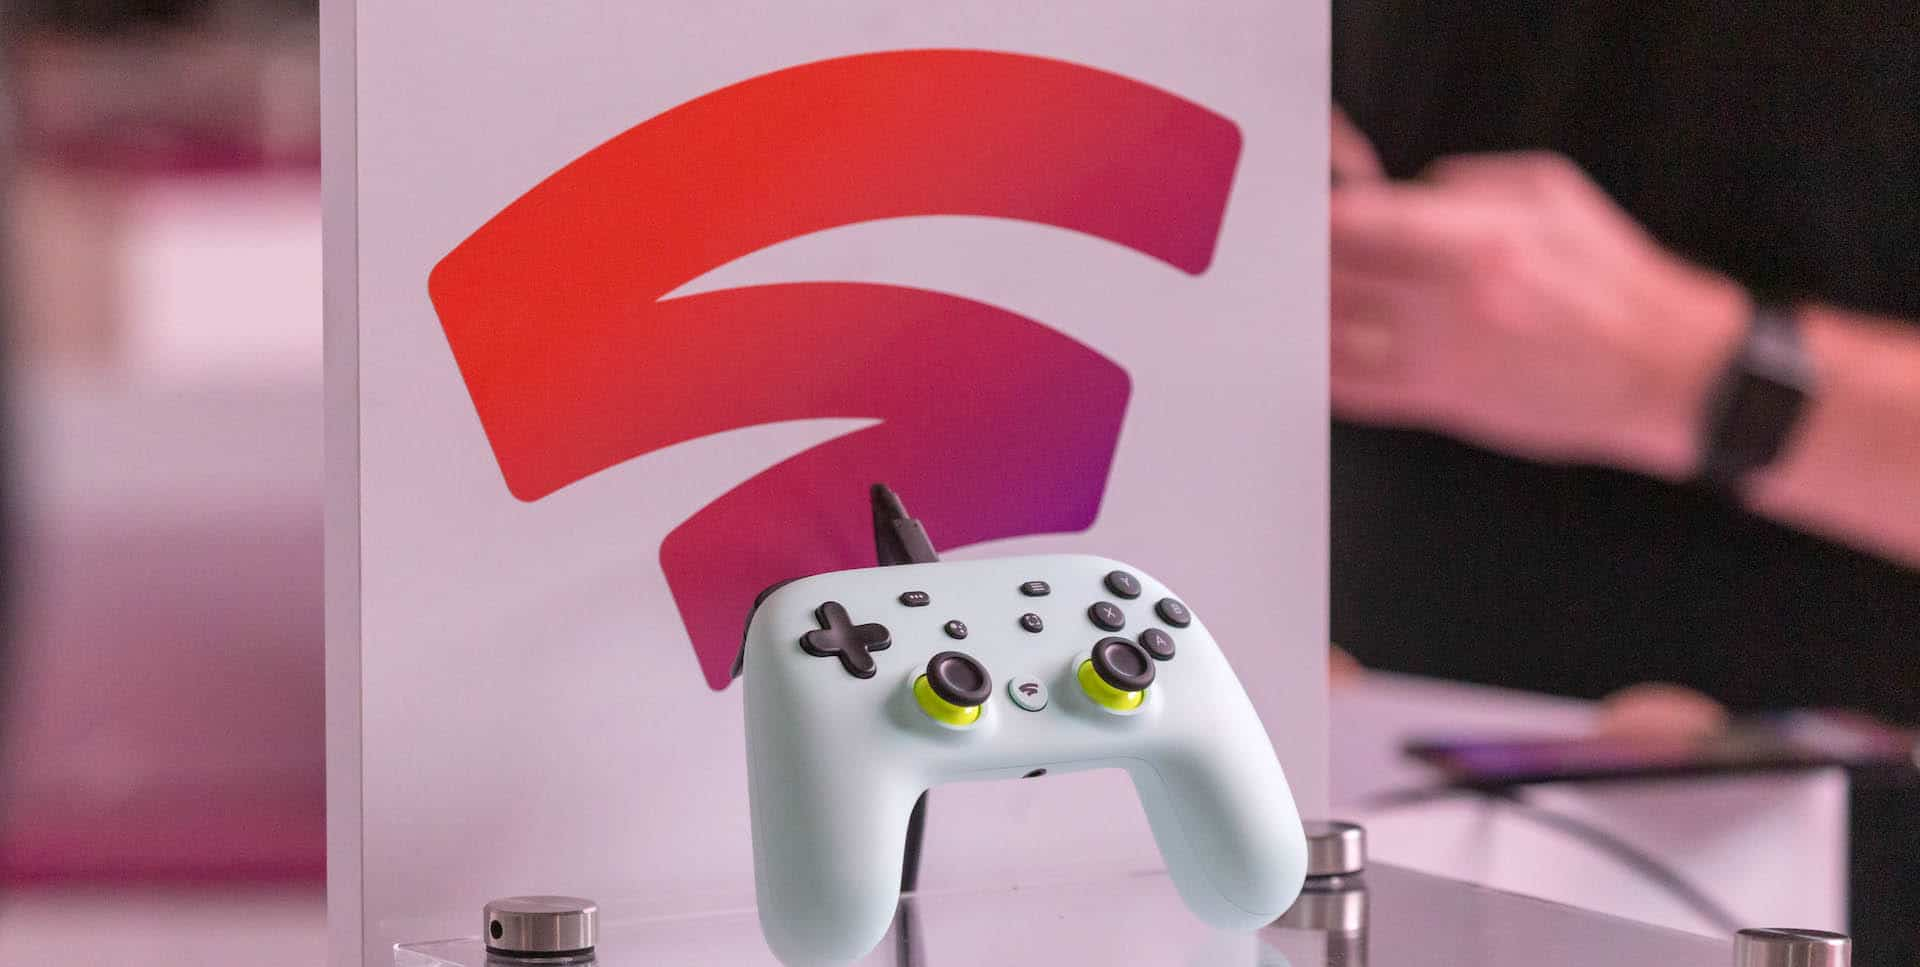 Nearly Six Million Daily Gamers Would Blast Through Their Data Caps With Google Stadia